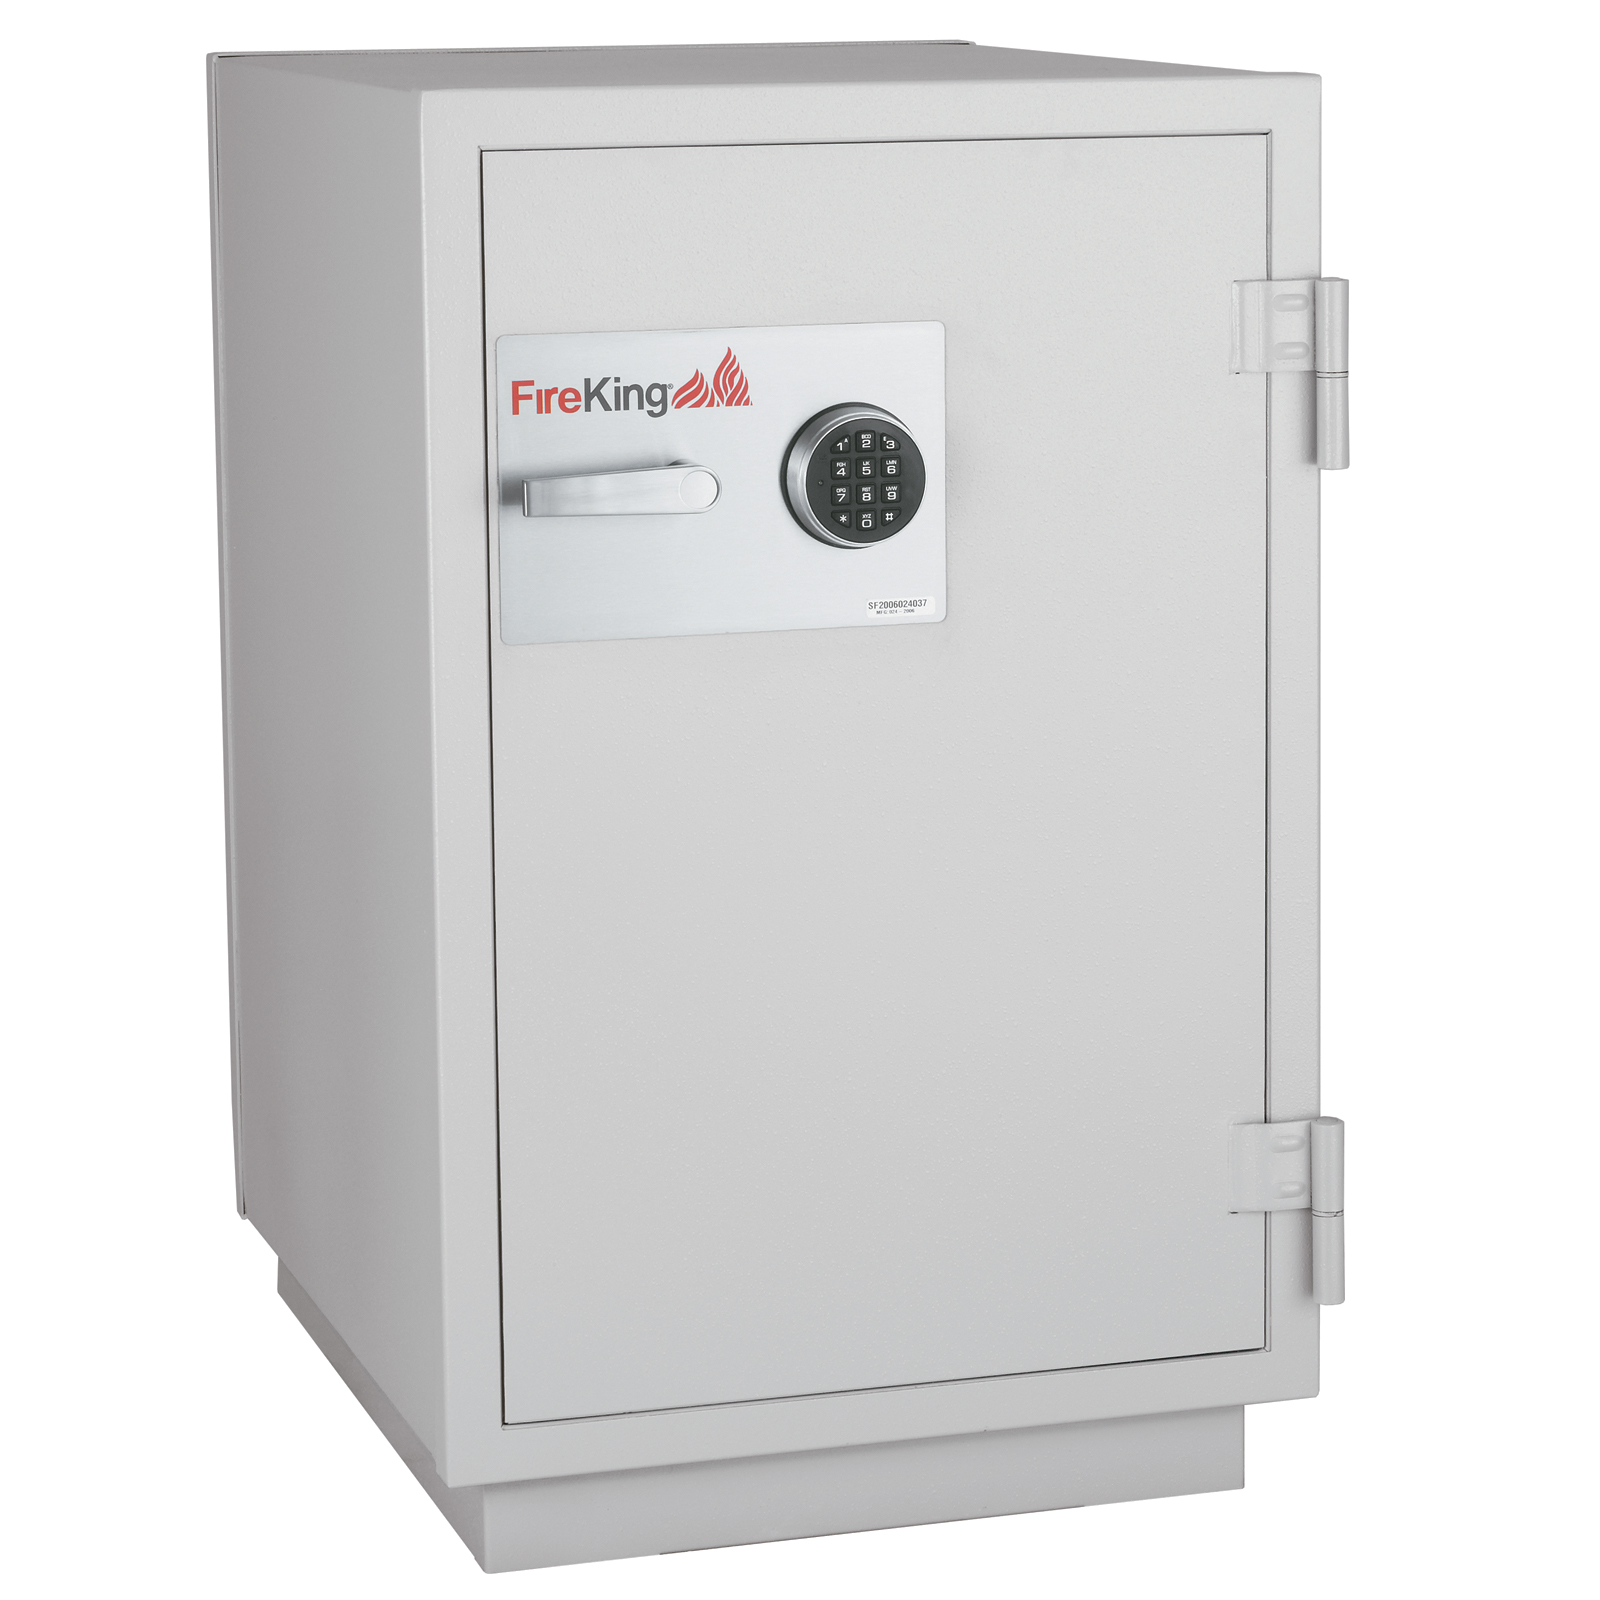 Fire King Safes manual